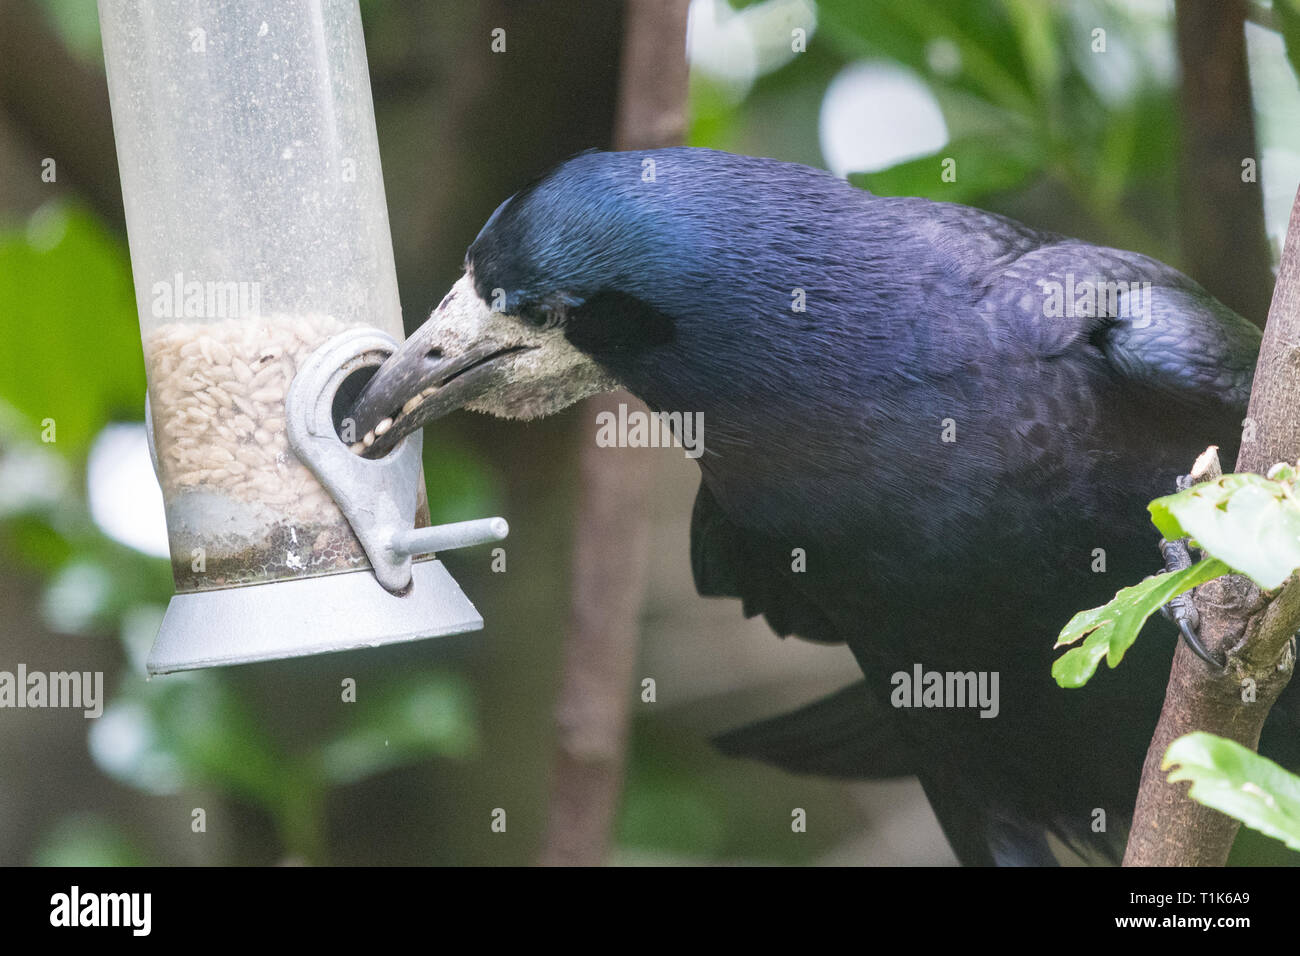 Stirlingshire, Scotland, UK. 27th Mar, 2019. a rook using its intelligence to access sunflower seeds in a bird feeder in a Stirlingshire garden. Much too large to perch on the feeder, and unable to reach the seeds inside, the rook could just manage to stretch and grab the perch in its beak. It then pulled the feeder towards itself before letting it go again in a swinging motion. As the feeder swung back towards the rook it was close enough for it to quickly grab a beakful of seeds, repeating the feat several times before being disturbed Credit: Kay Roxby/Alamy Live News Stock Photo